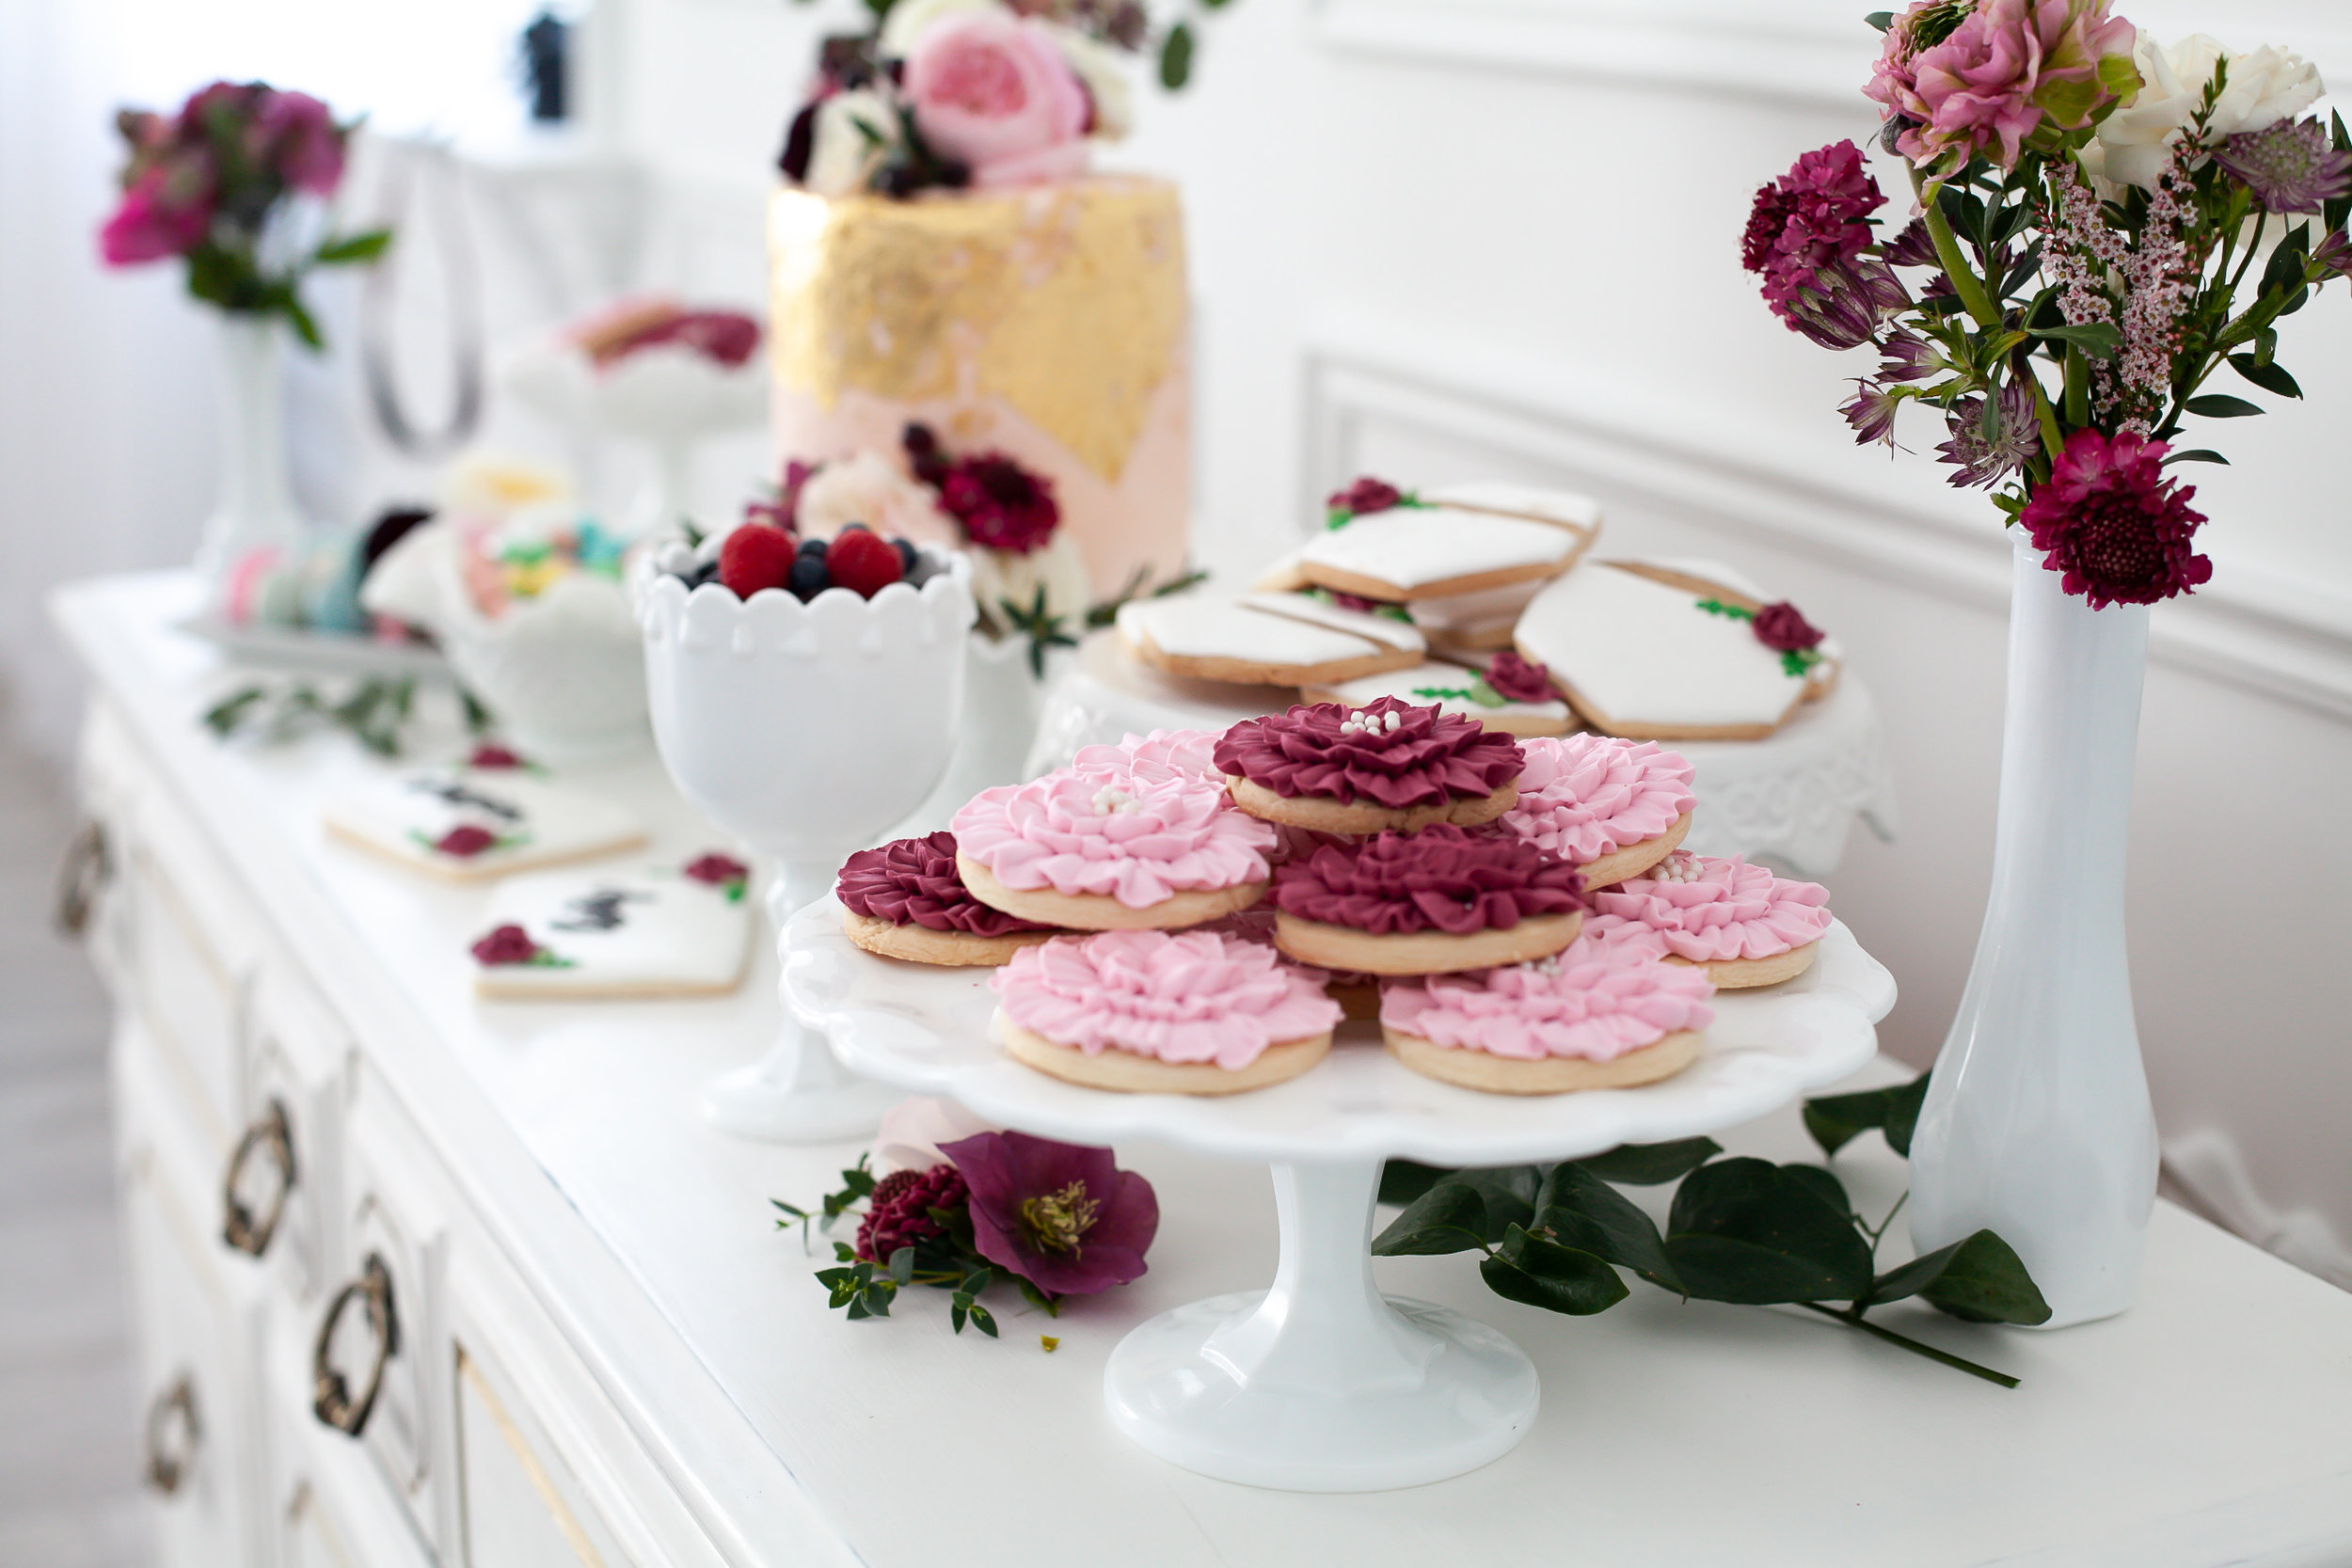 Toronto_Styled_Maternity_Sweet_Table_Food_Photographer_Petra_King_Photography